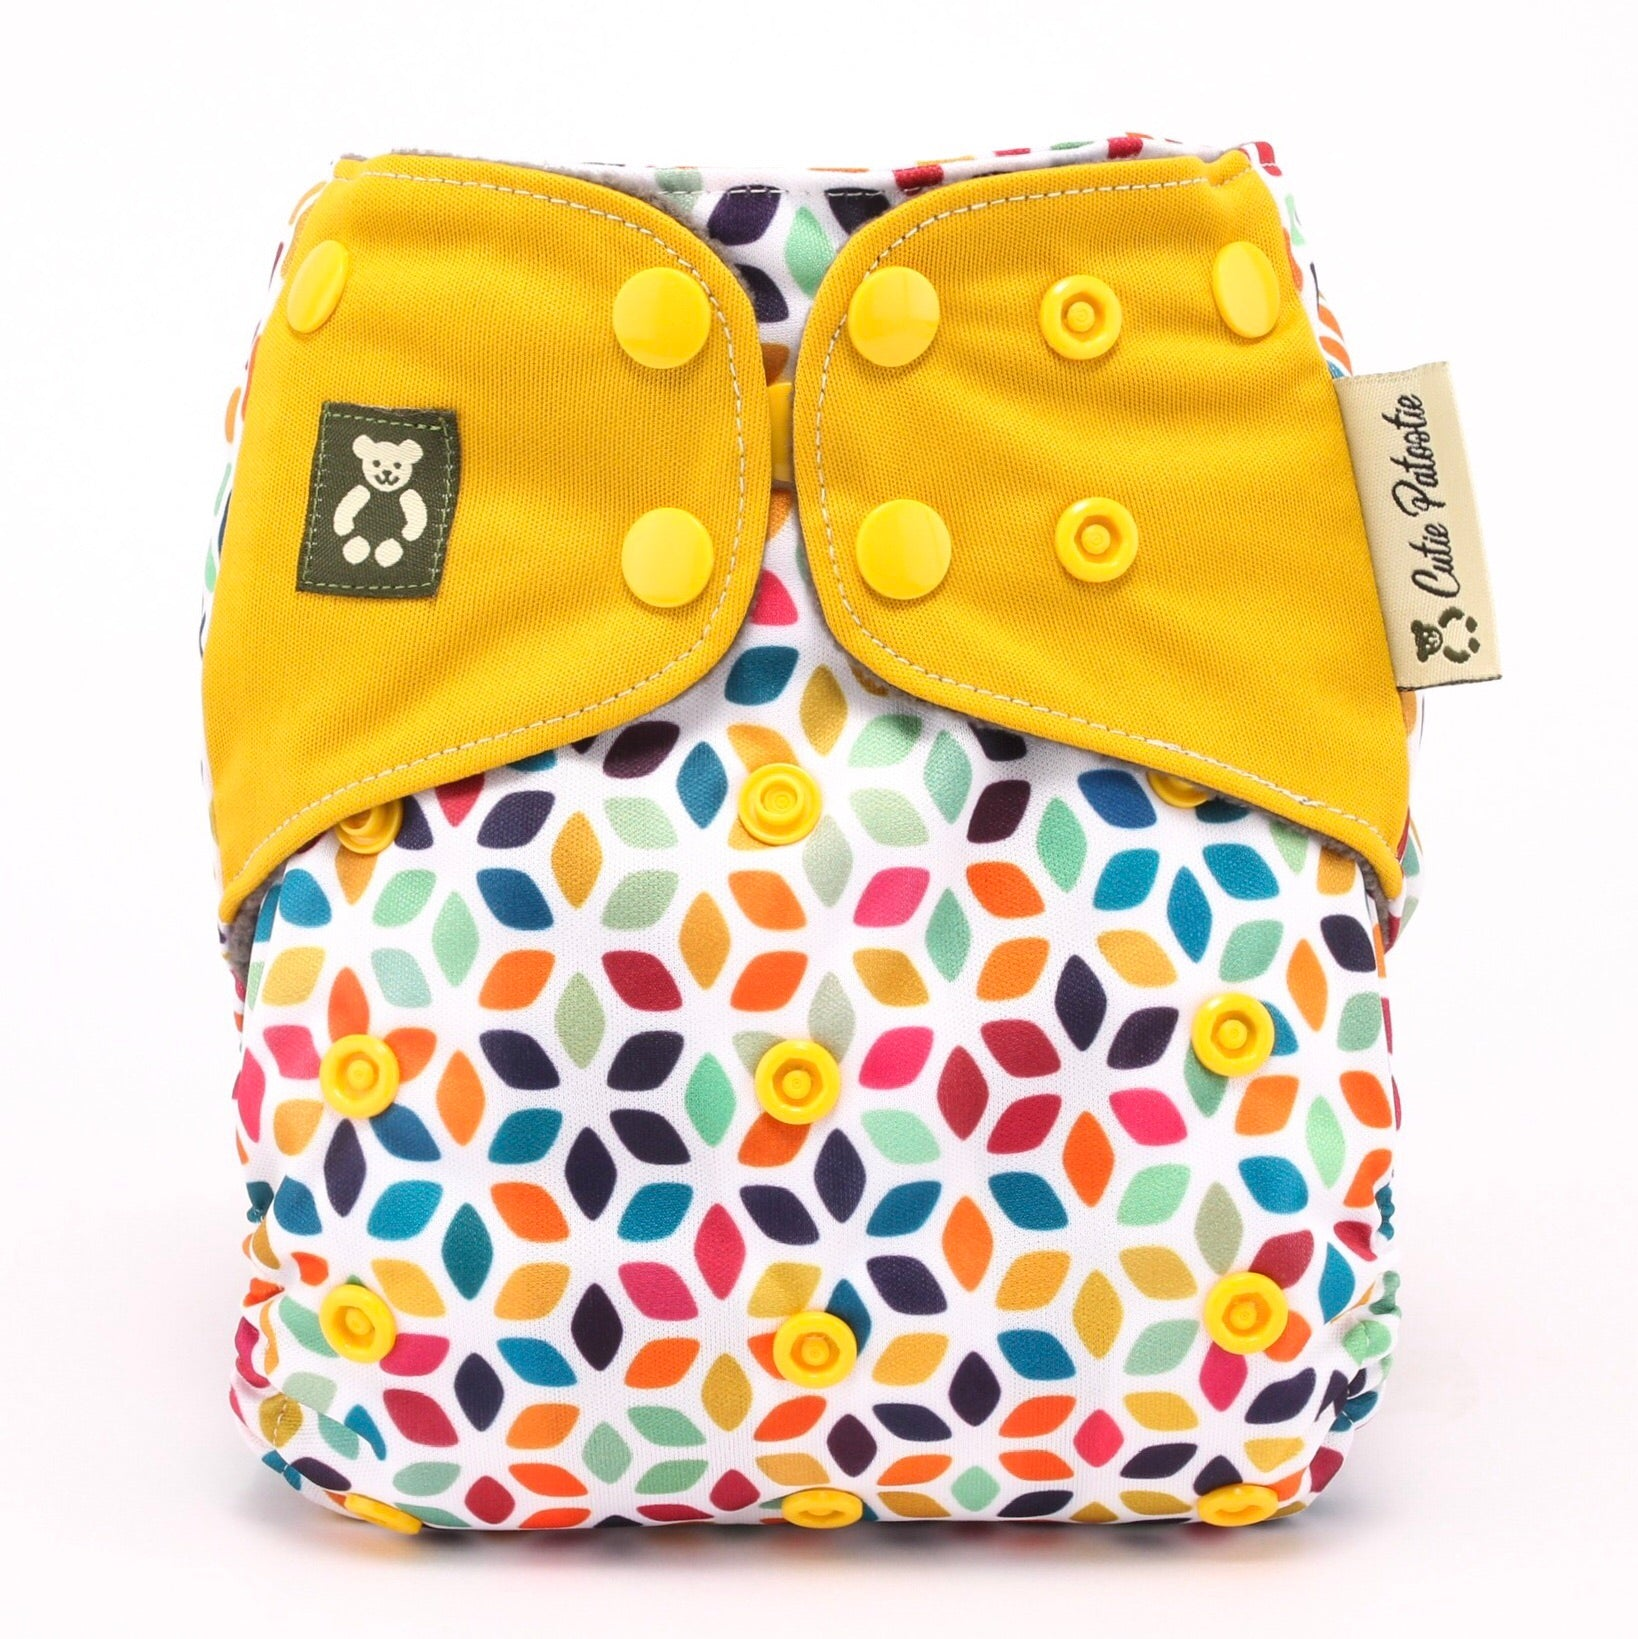 Psychedelic Blooms - Cutie Patootie FlexiNappy Premium Best Cloth Diapers